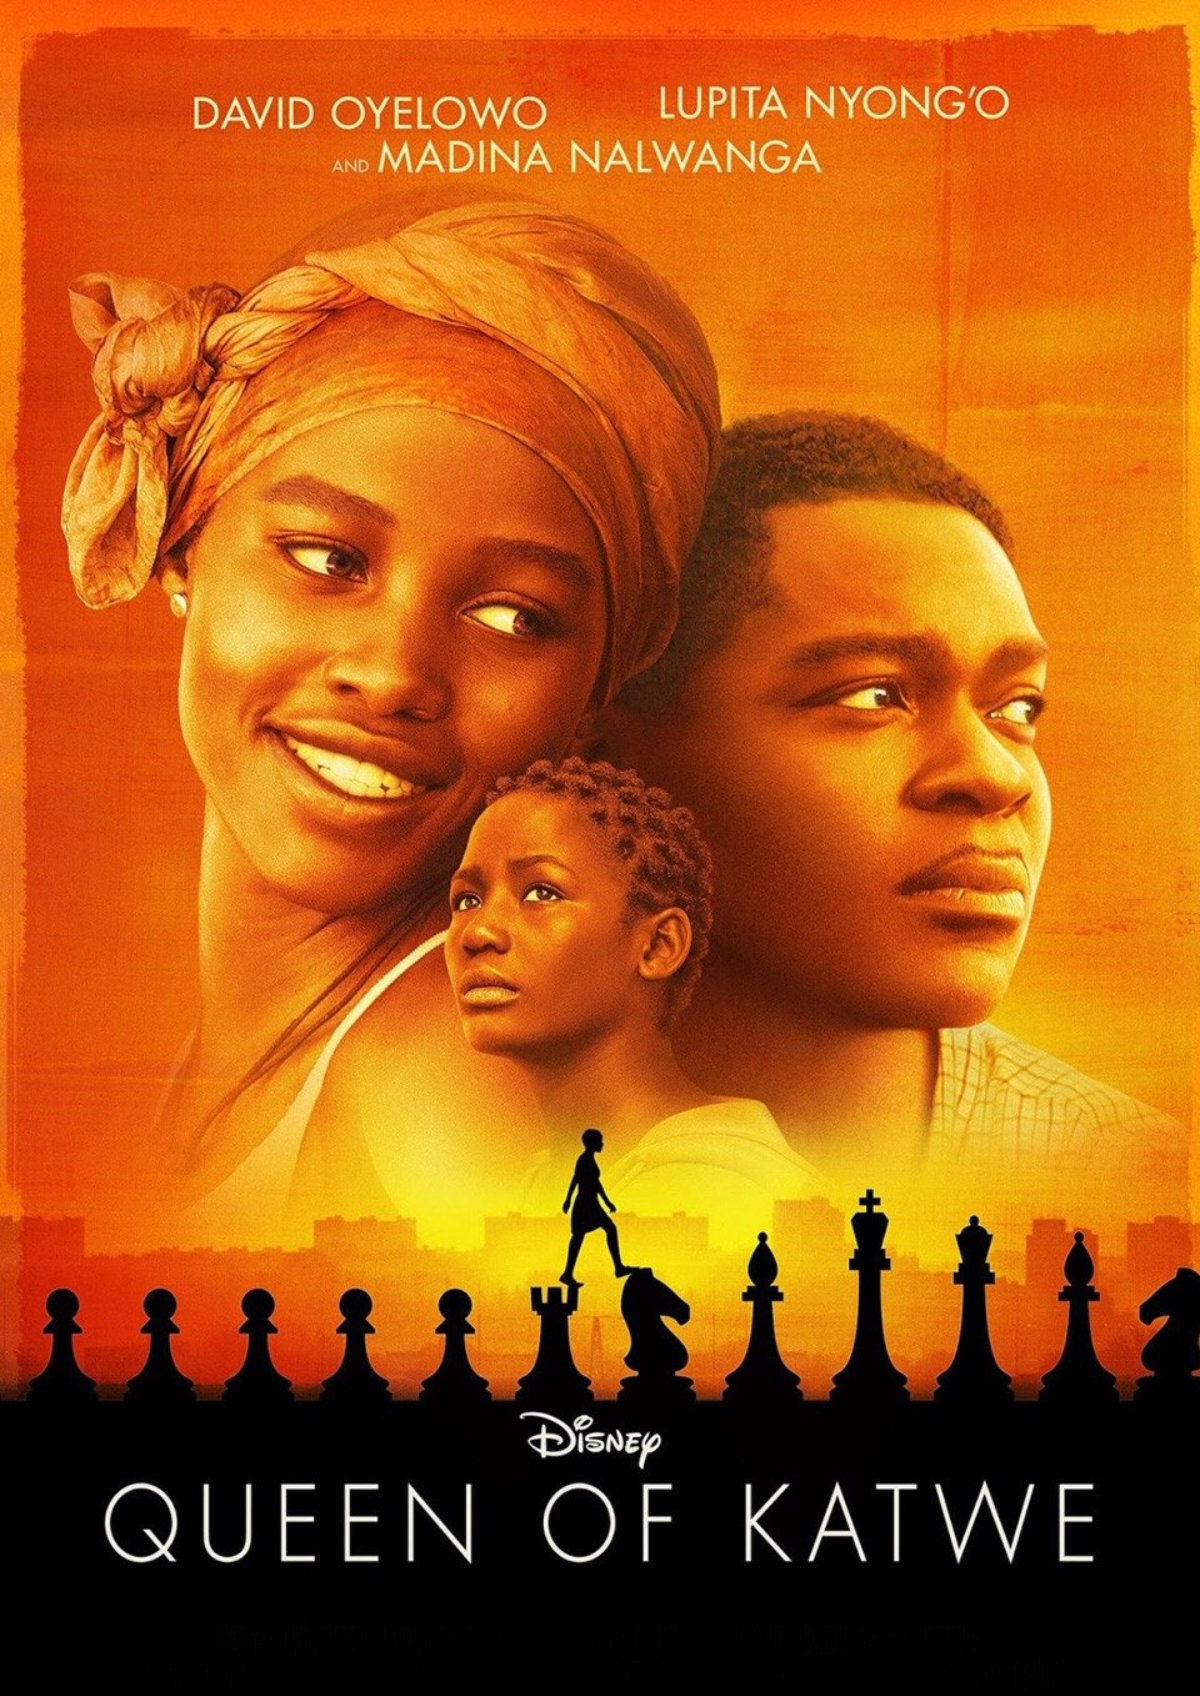 'Queen of Katwe' movie poster